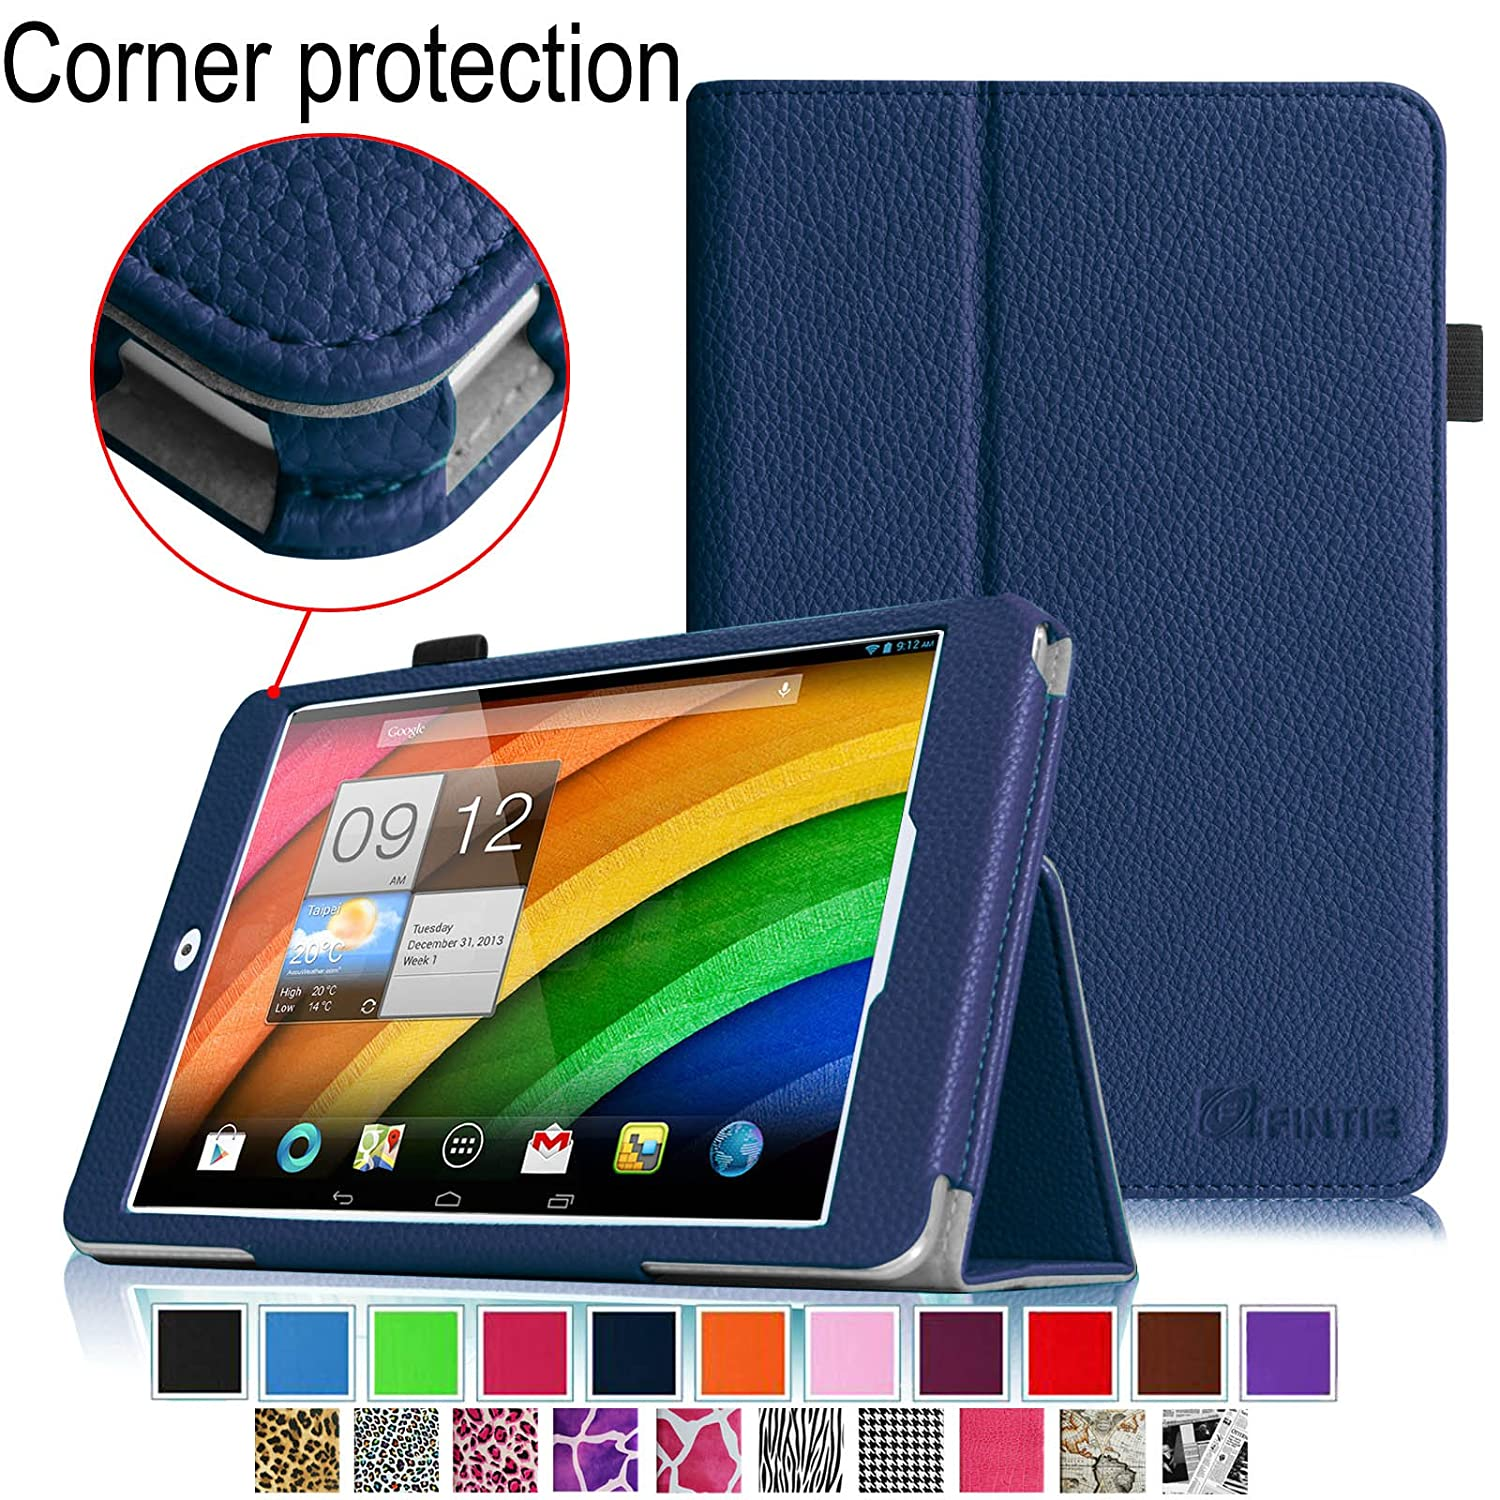 Fintie Acer Iconia Tab 8 A1-840 FHD 8-Inch Android Tablet Folio Case - Premium Leather Cover Stand With Stylus Holder slim print case for acer iconia tab 10 a3 a40 one 10 b3 a30 10 1 inch tablet pu leather case folding stand cover screen film pen